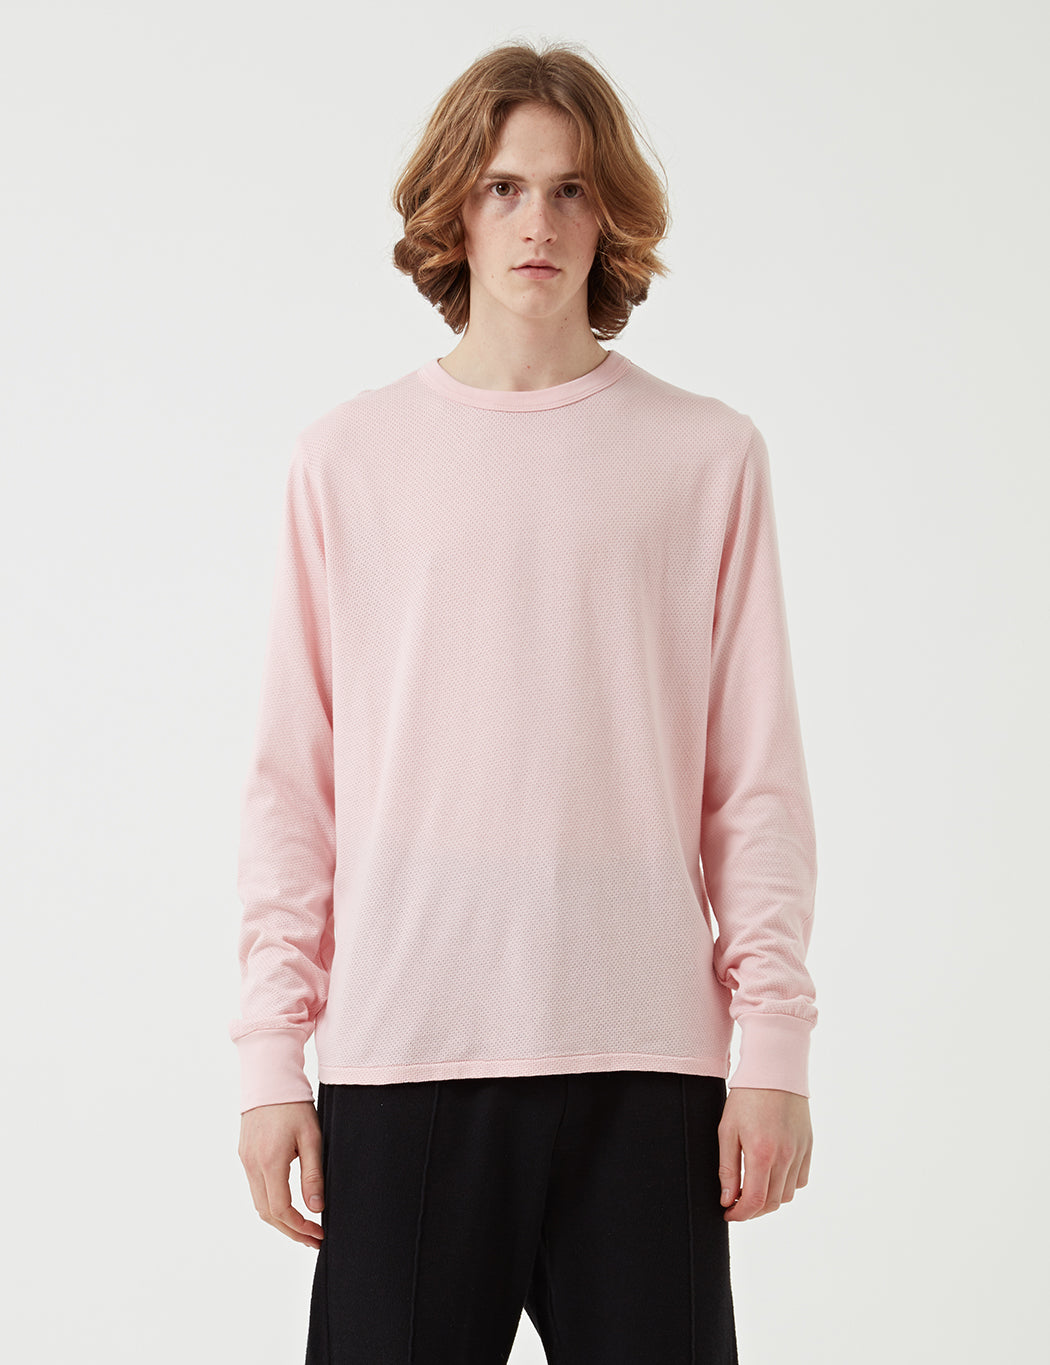 Les Basics Le Long Sleeve T-Shirt - Pink